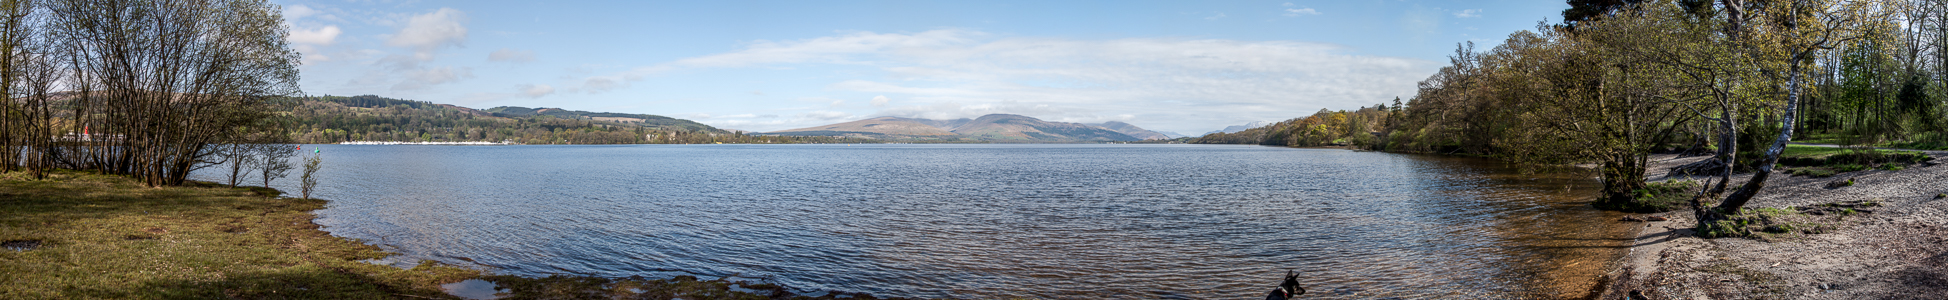 Balloch Loch Lomond and The Trossachs National Park: Loch Lomond